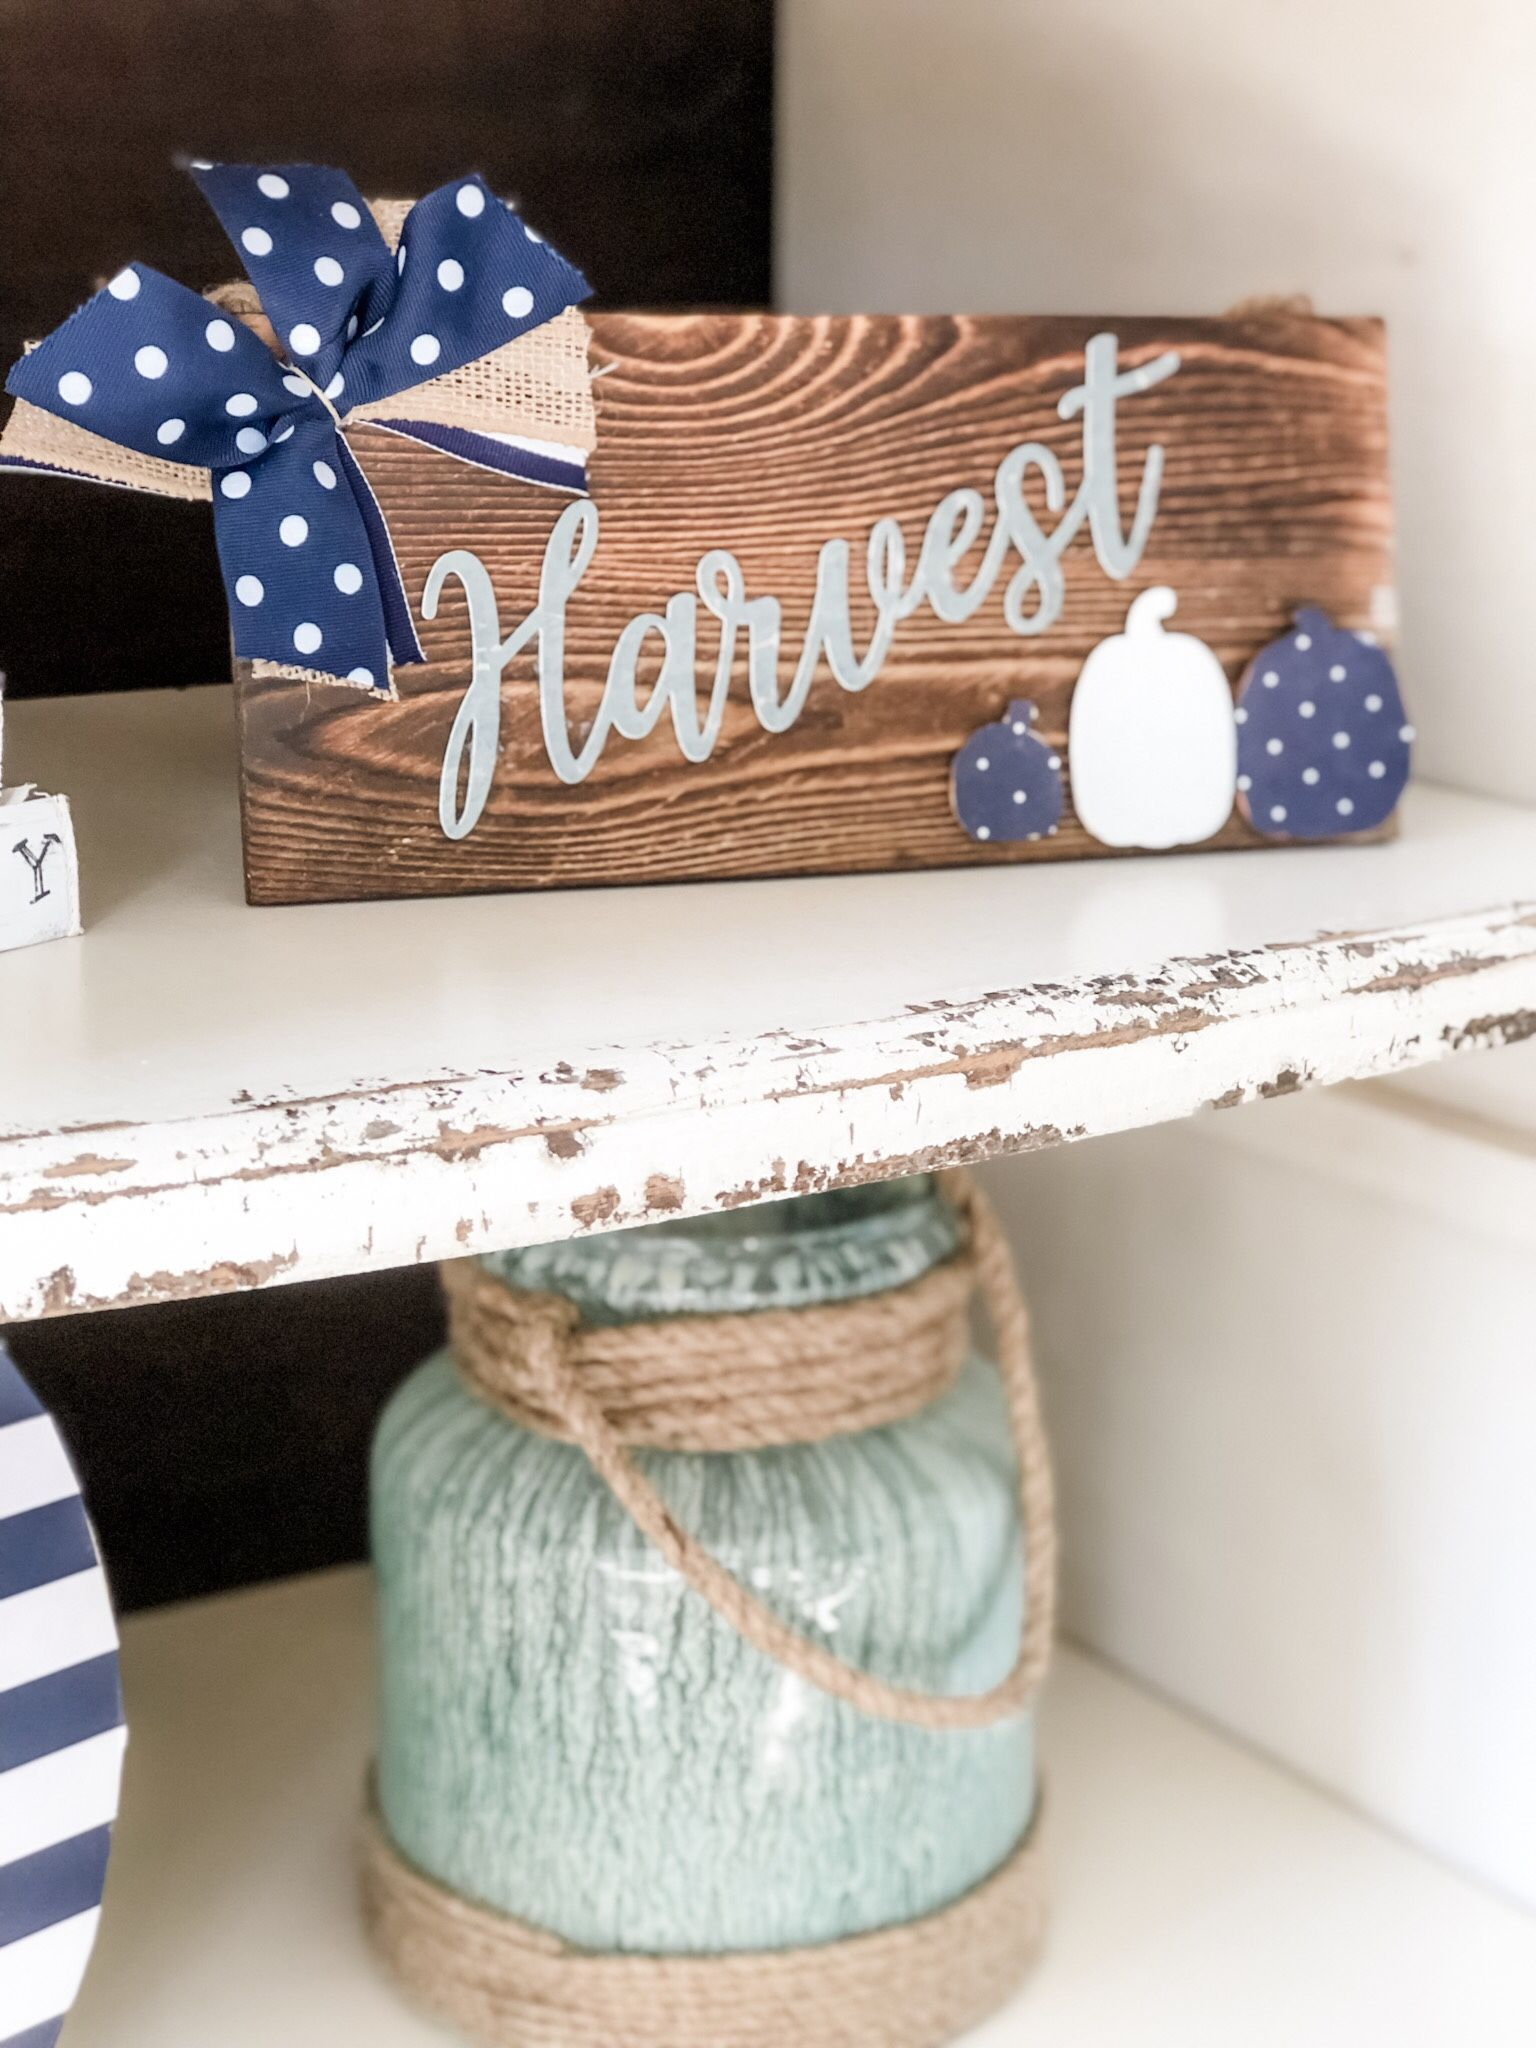 5 minute fall craft ideas! These two projects are so easy ...